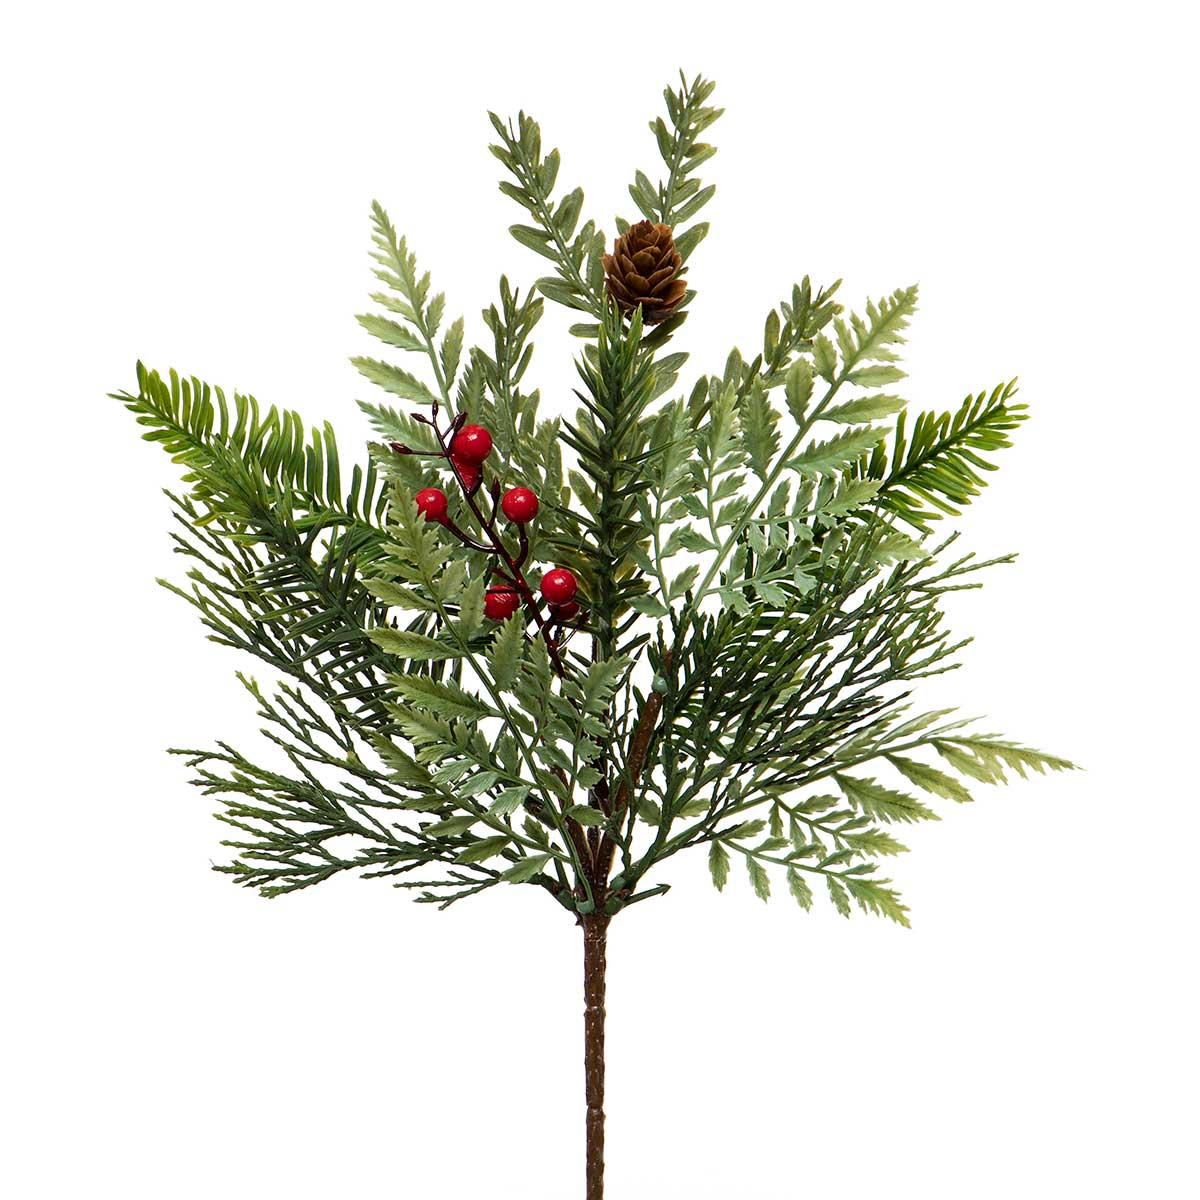 CYPRESS PINE PIK WITH RED BERRIES